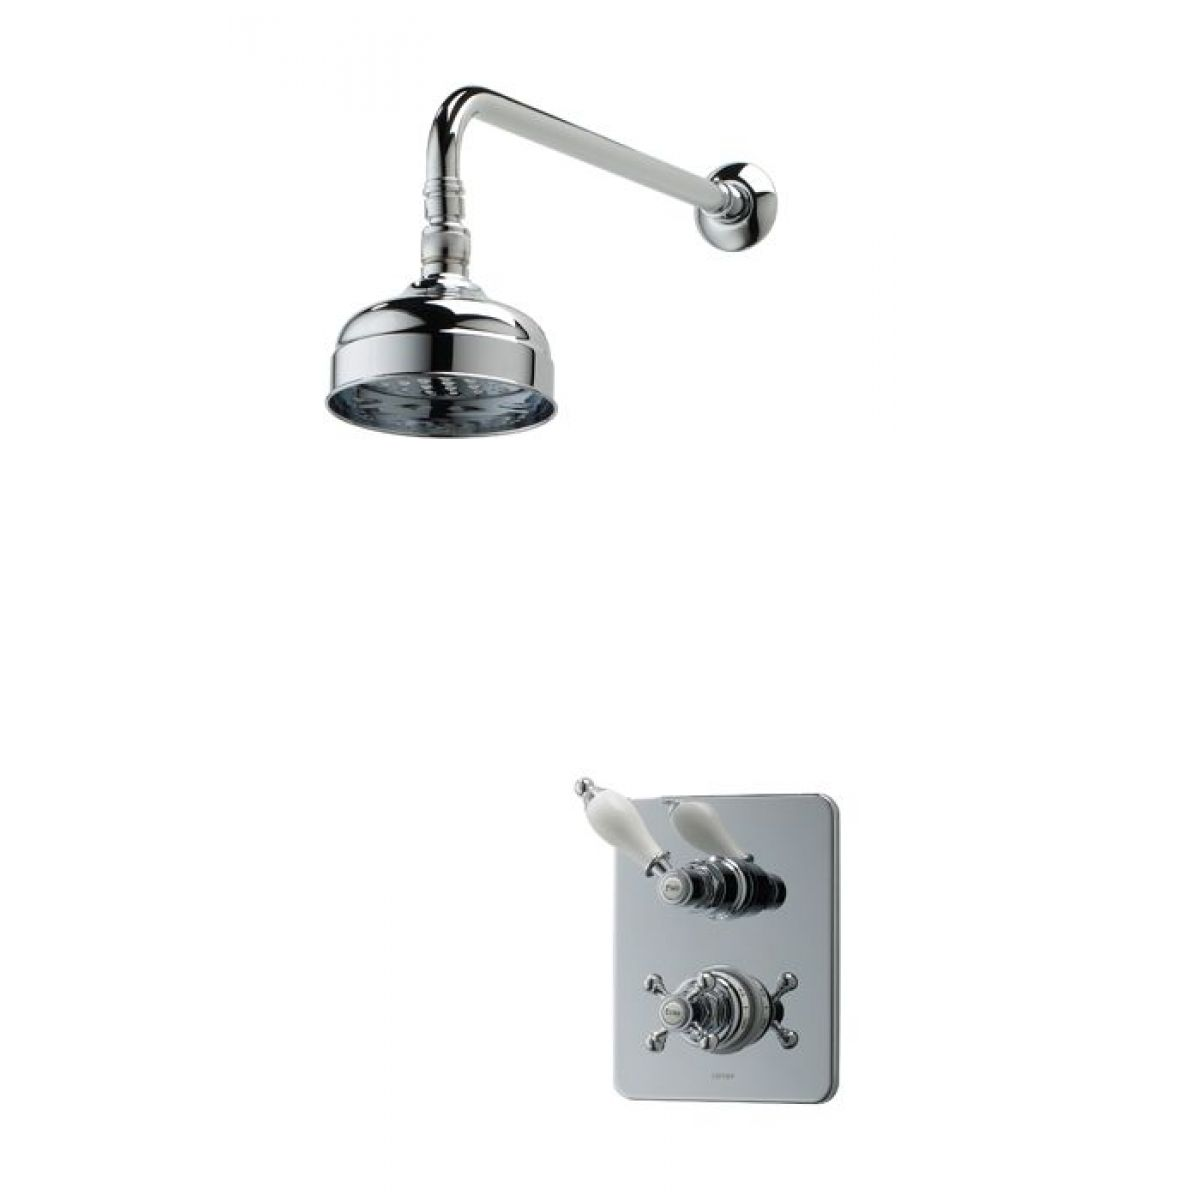 Triton Unichrome Avon Dual Built-in Shower Valve With Fixed Head